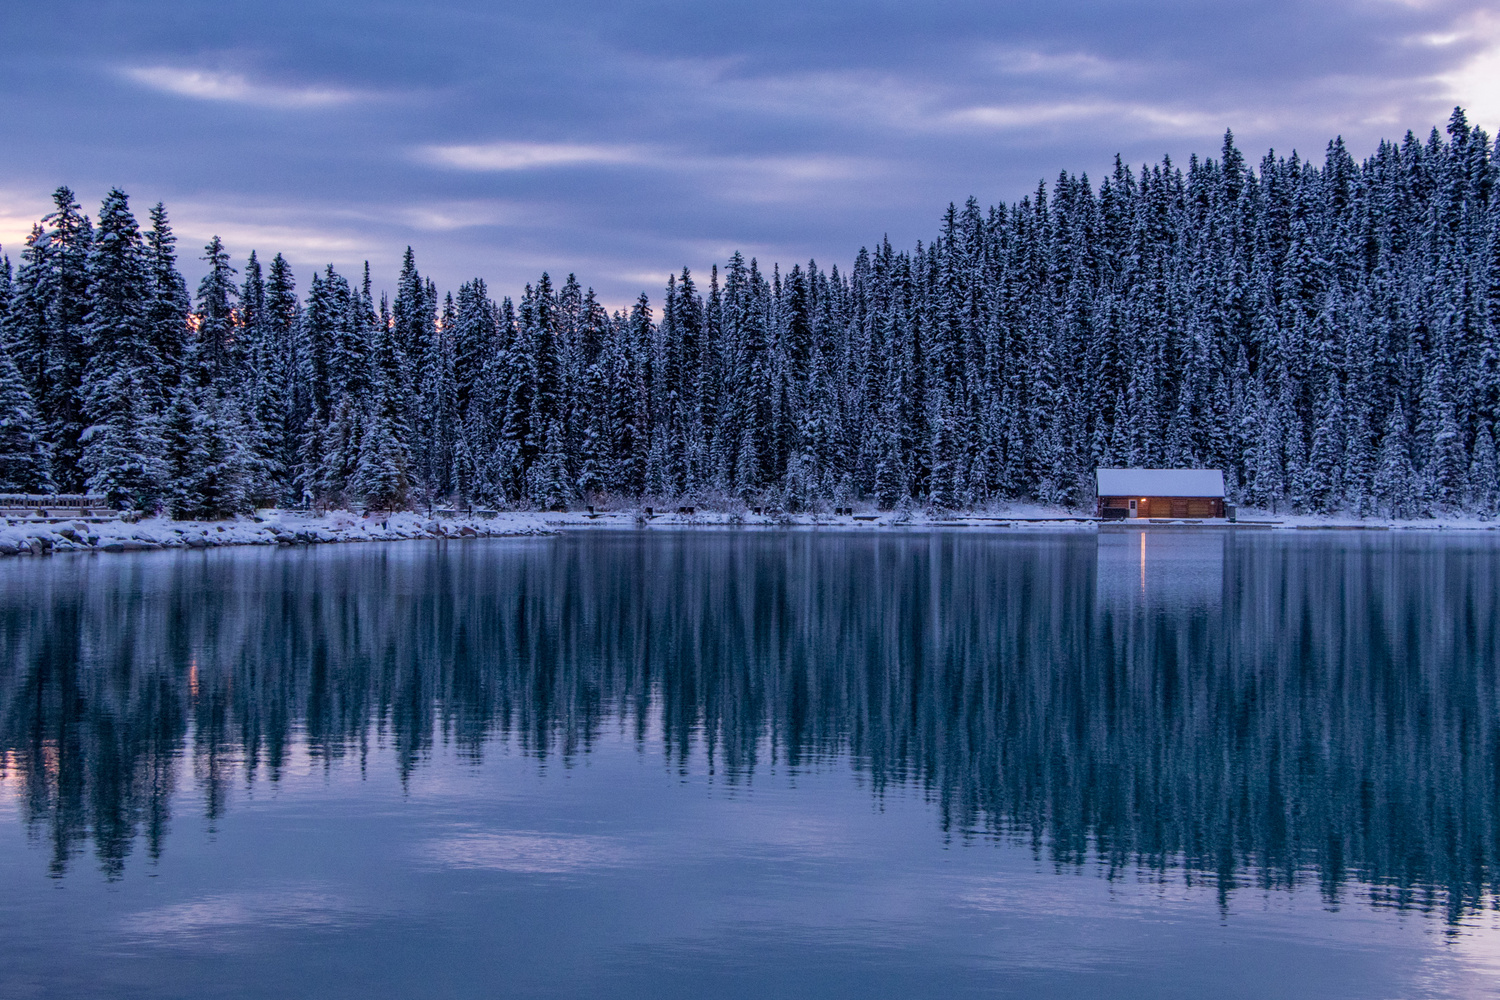 Winter is Home by Ashleigh Magill